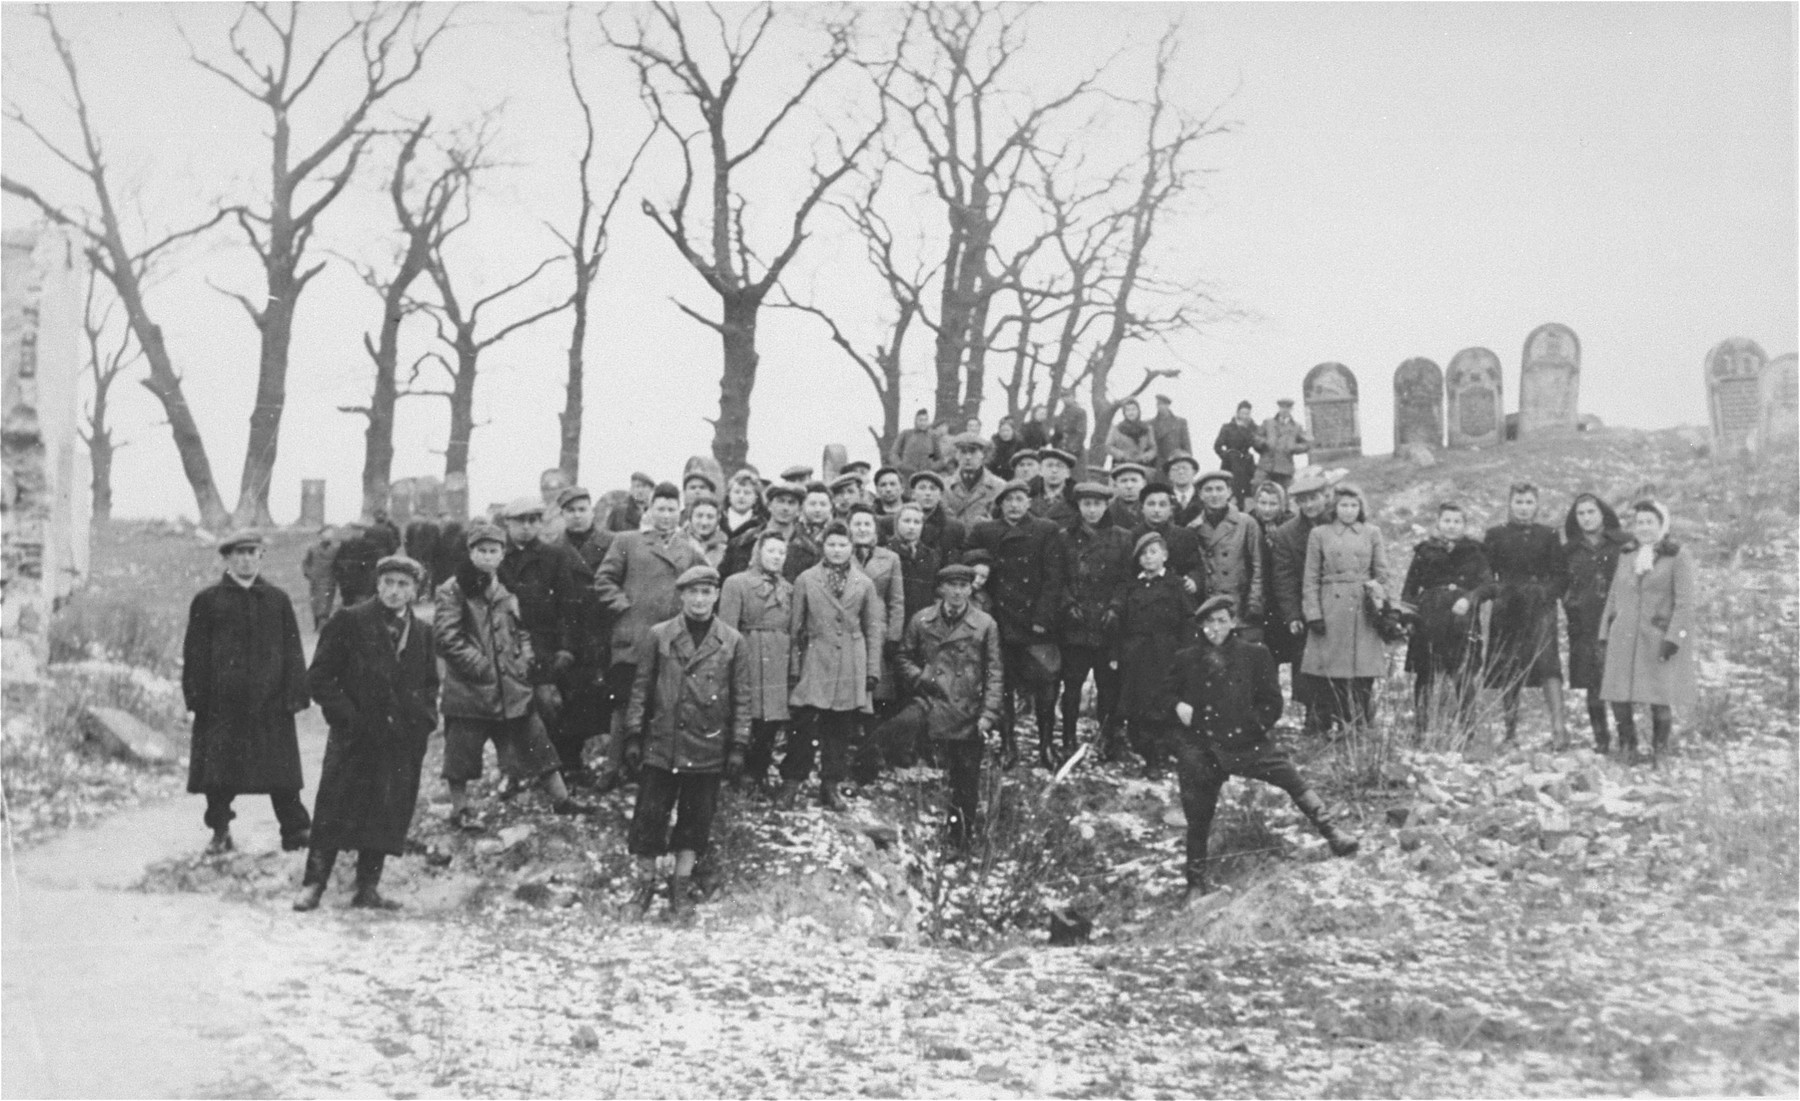 Group portrait of Jews from Ostrowiec standing on the site of a mass grave for 2000 Jews shot during the October 1942 action.  Behind them is a portion of the vandalized Jewish cemetery.    Among those pictured is Berek Blumensztok.  He is standing in the center. Berek  returned to Ostrowiec after the war with the hope of reuniting with his family.  However, all had perished, including his mother, father and 8 siblings.   Also pictured is Dora Weinberg Berman (third woman from the right).